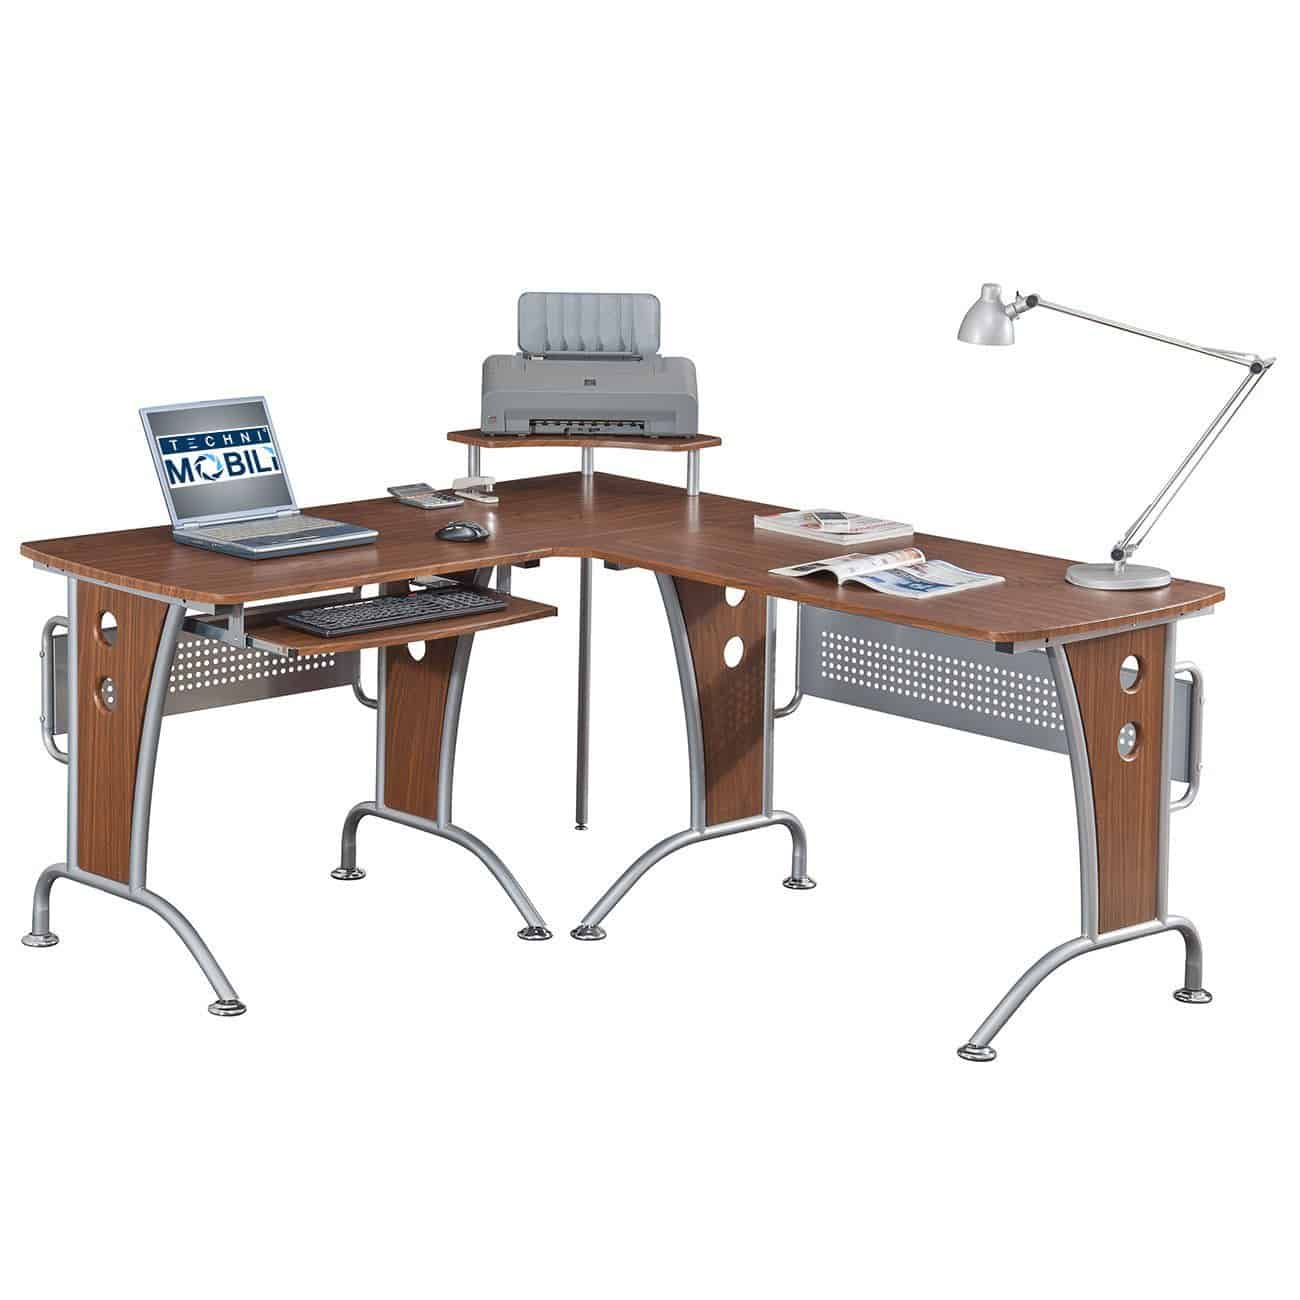 Top 10 Small Home Office Desk Ideas for 2020